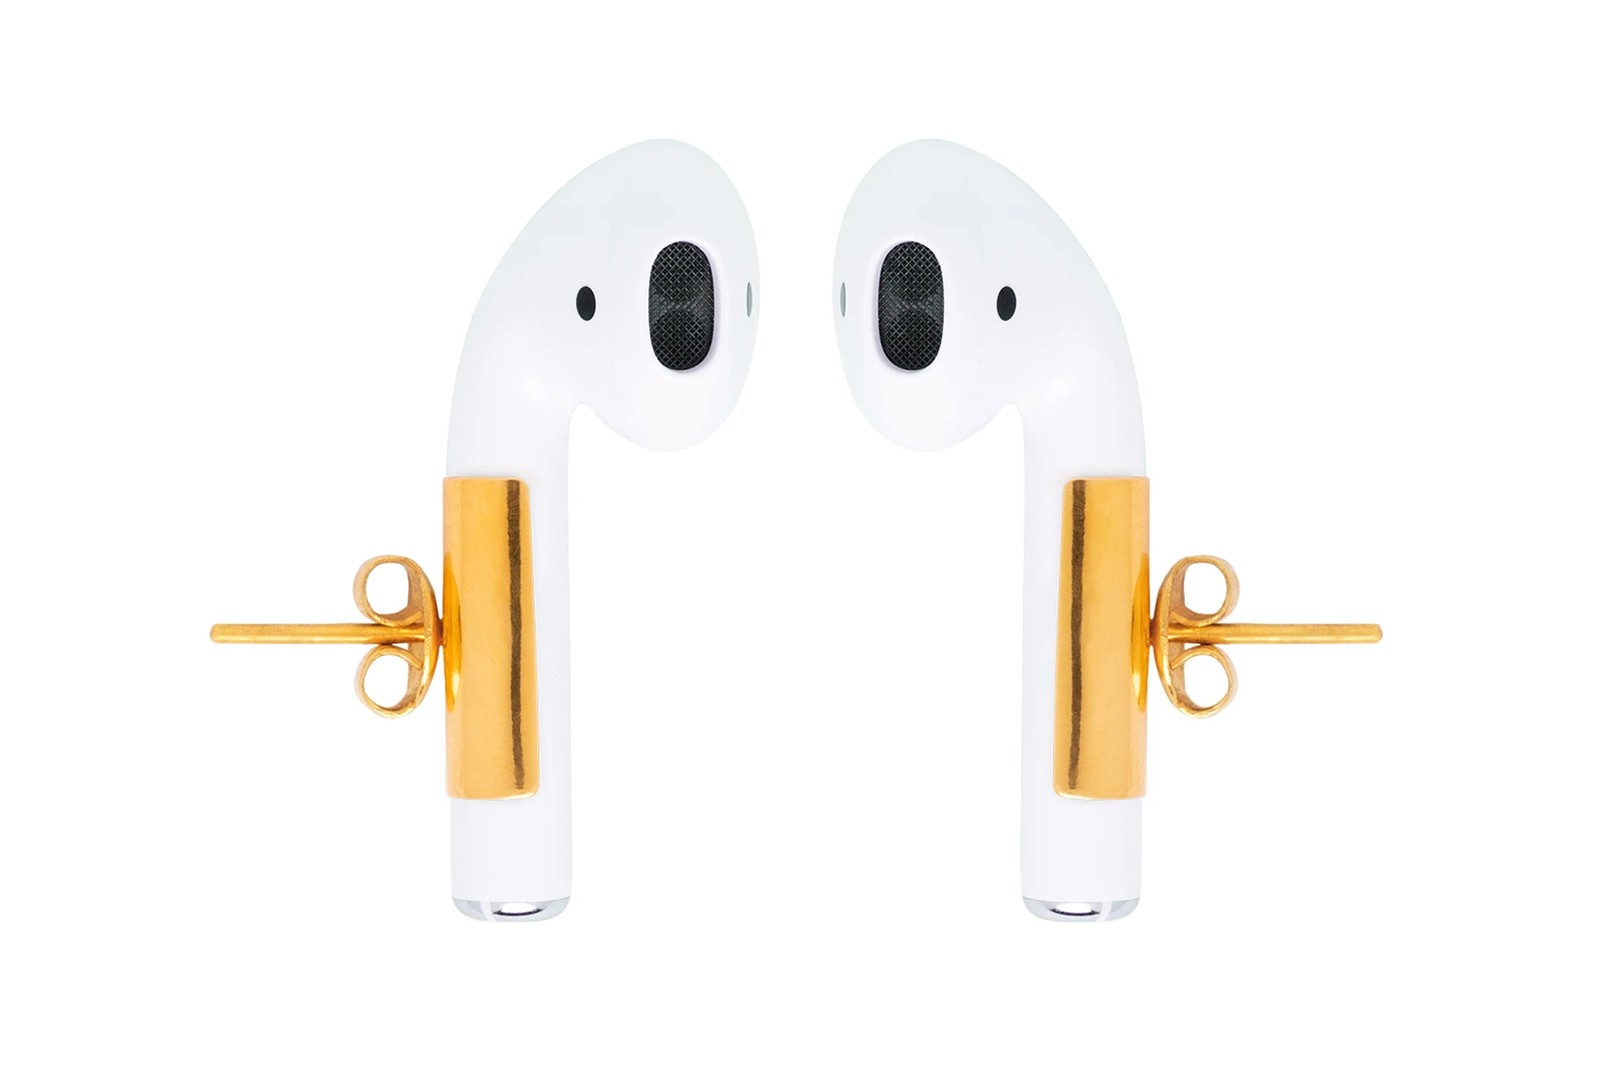 misho airpods earrings jewelry pebble minimal active tall pods gold accessories